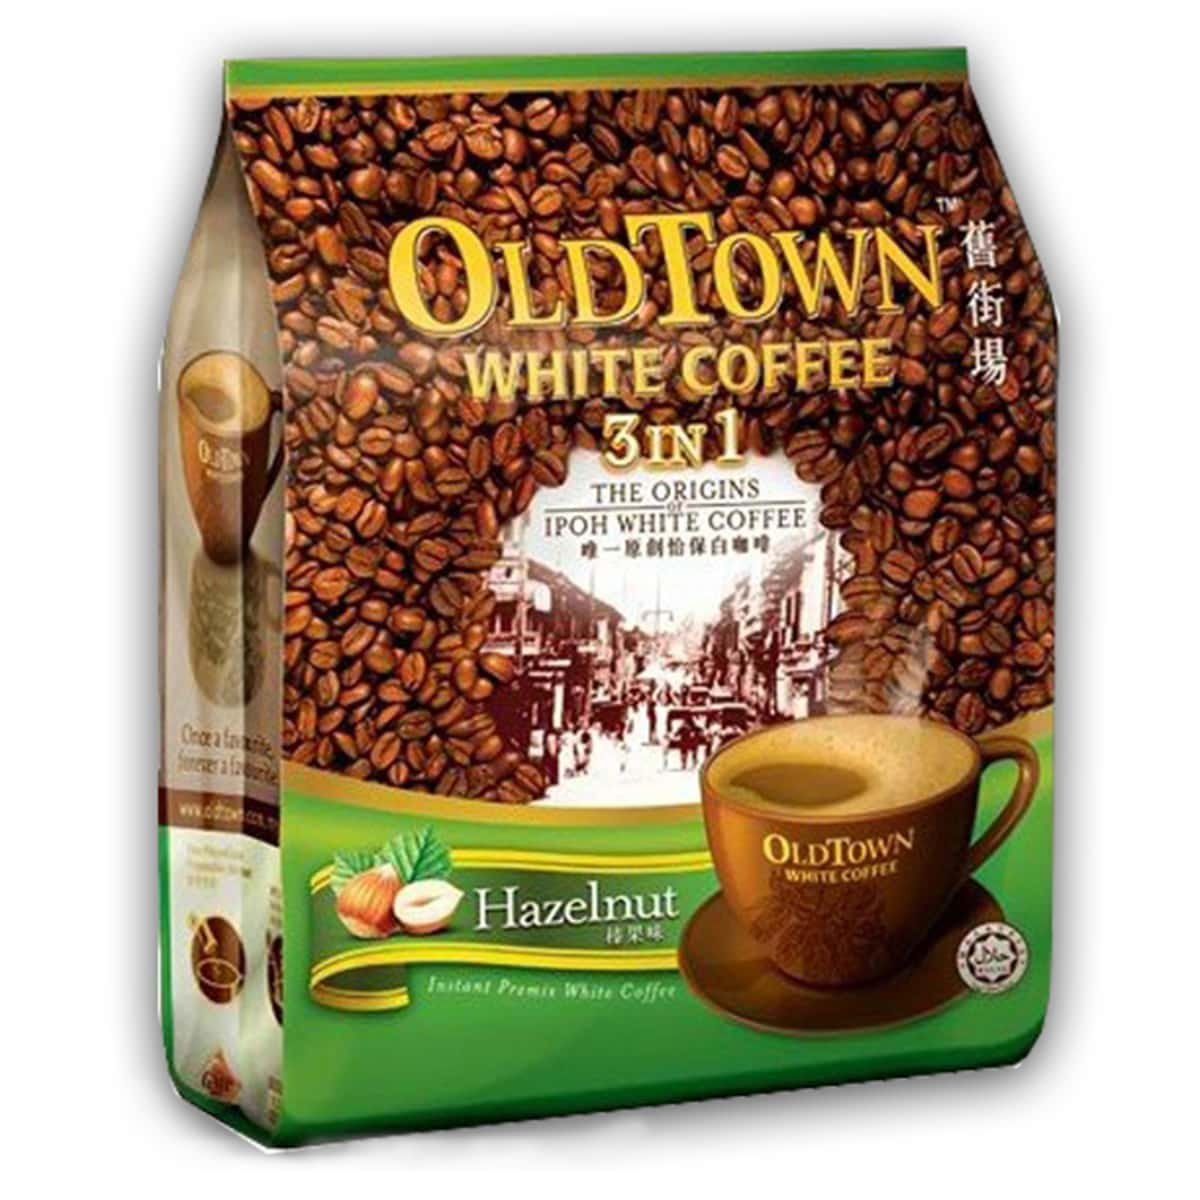 Buy Old Town White Coffee 3 in 1 (Hazelnut Flavour) - 600 gm